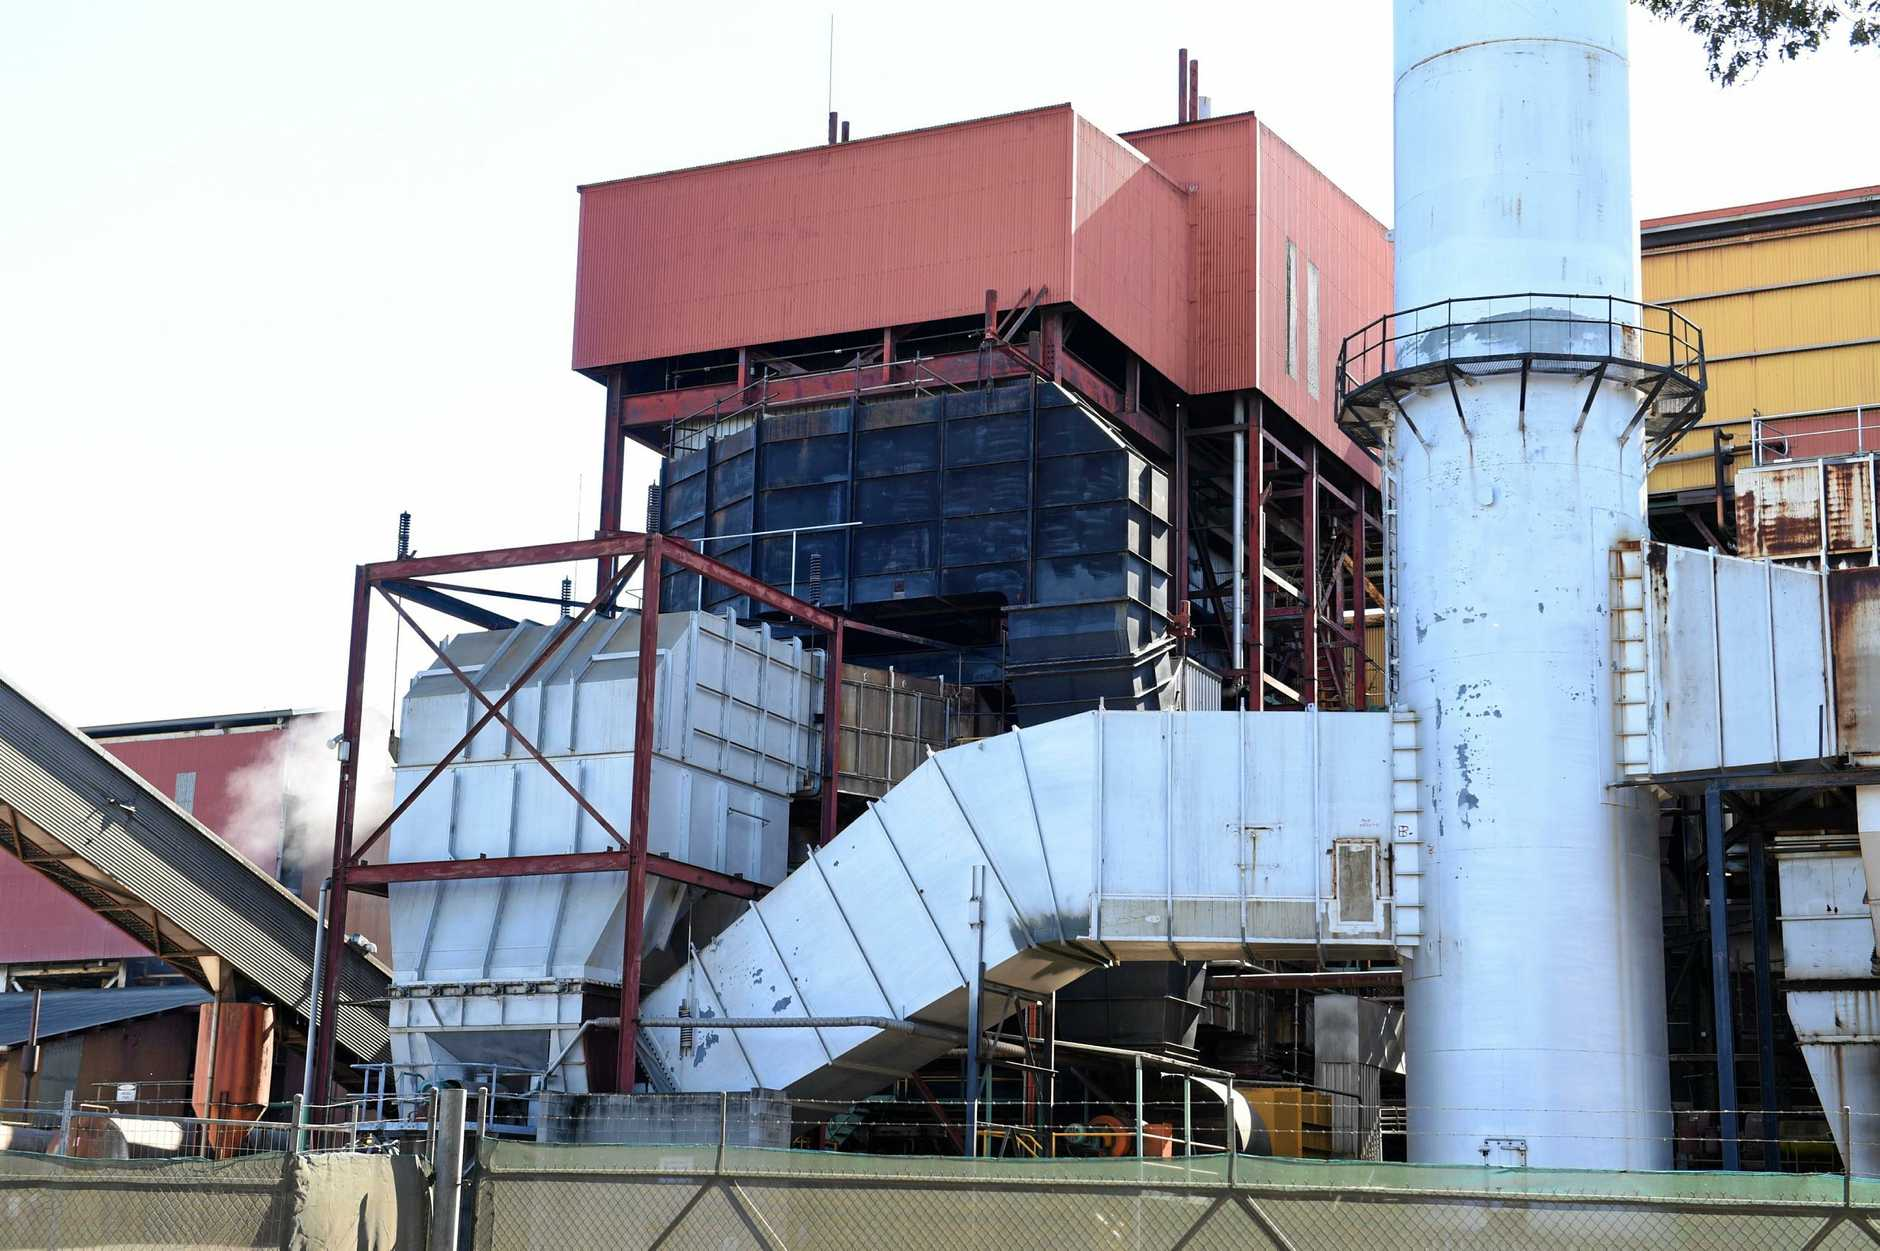 FACTORY FIRE: An overnight fire in one of the boilers at the Maryborough Sugar Mill has brought the factory to a halt for the next three days while repairs are carried out.